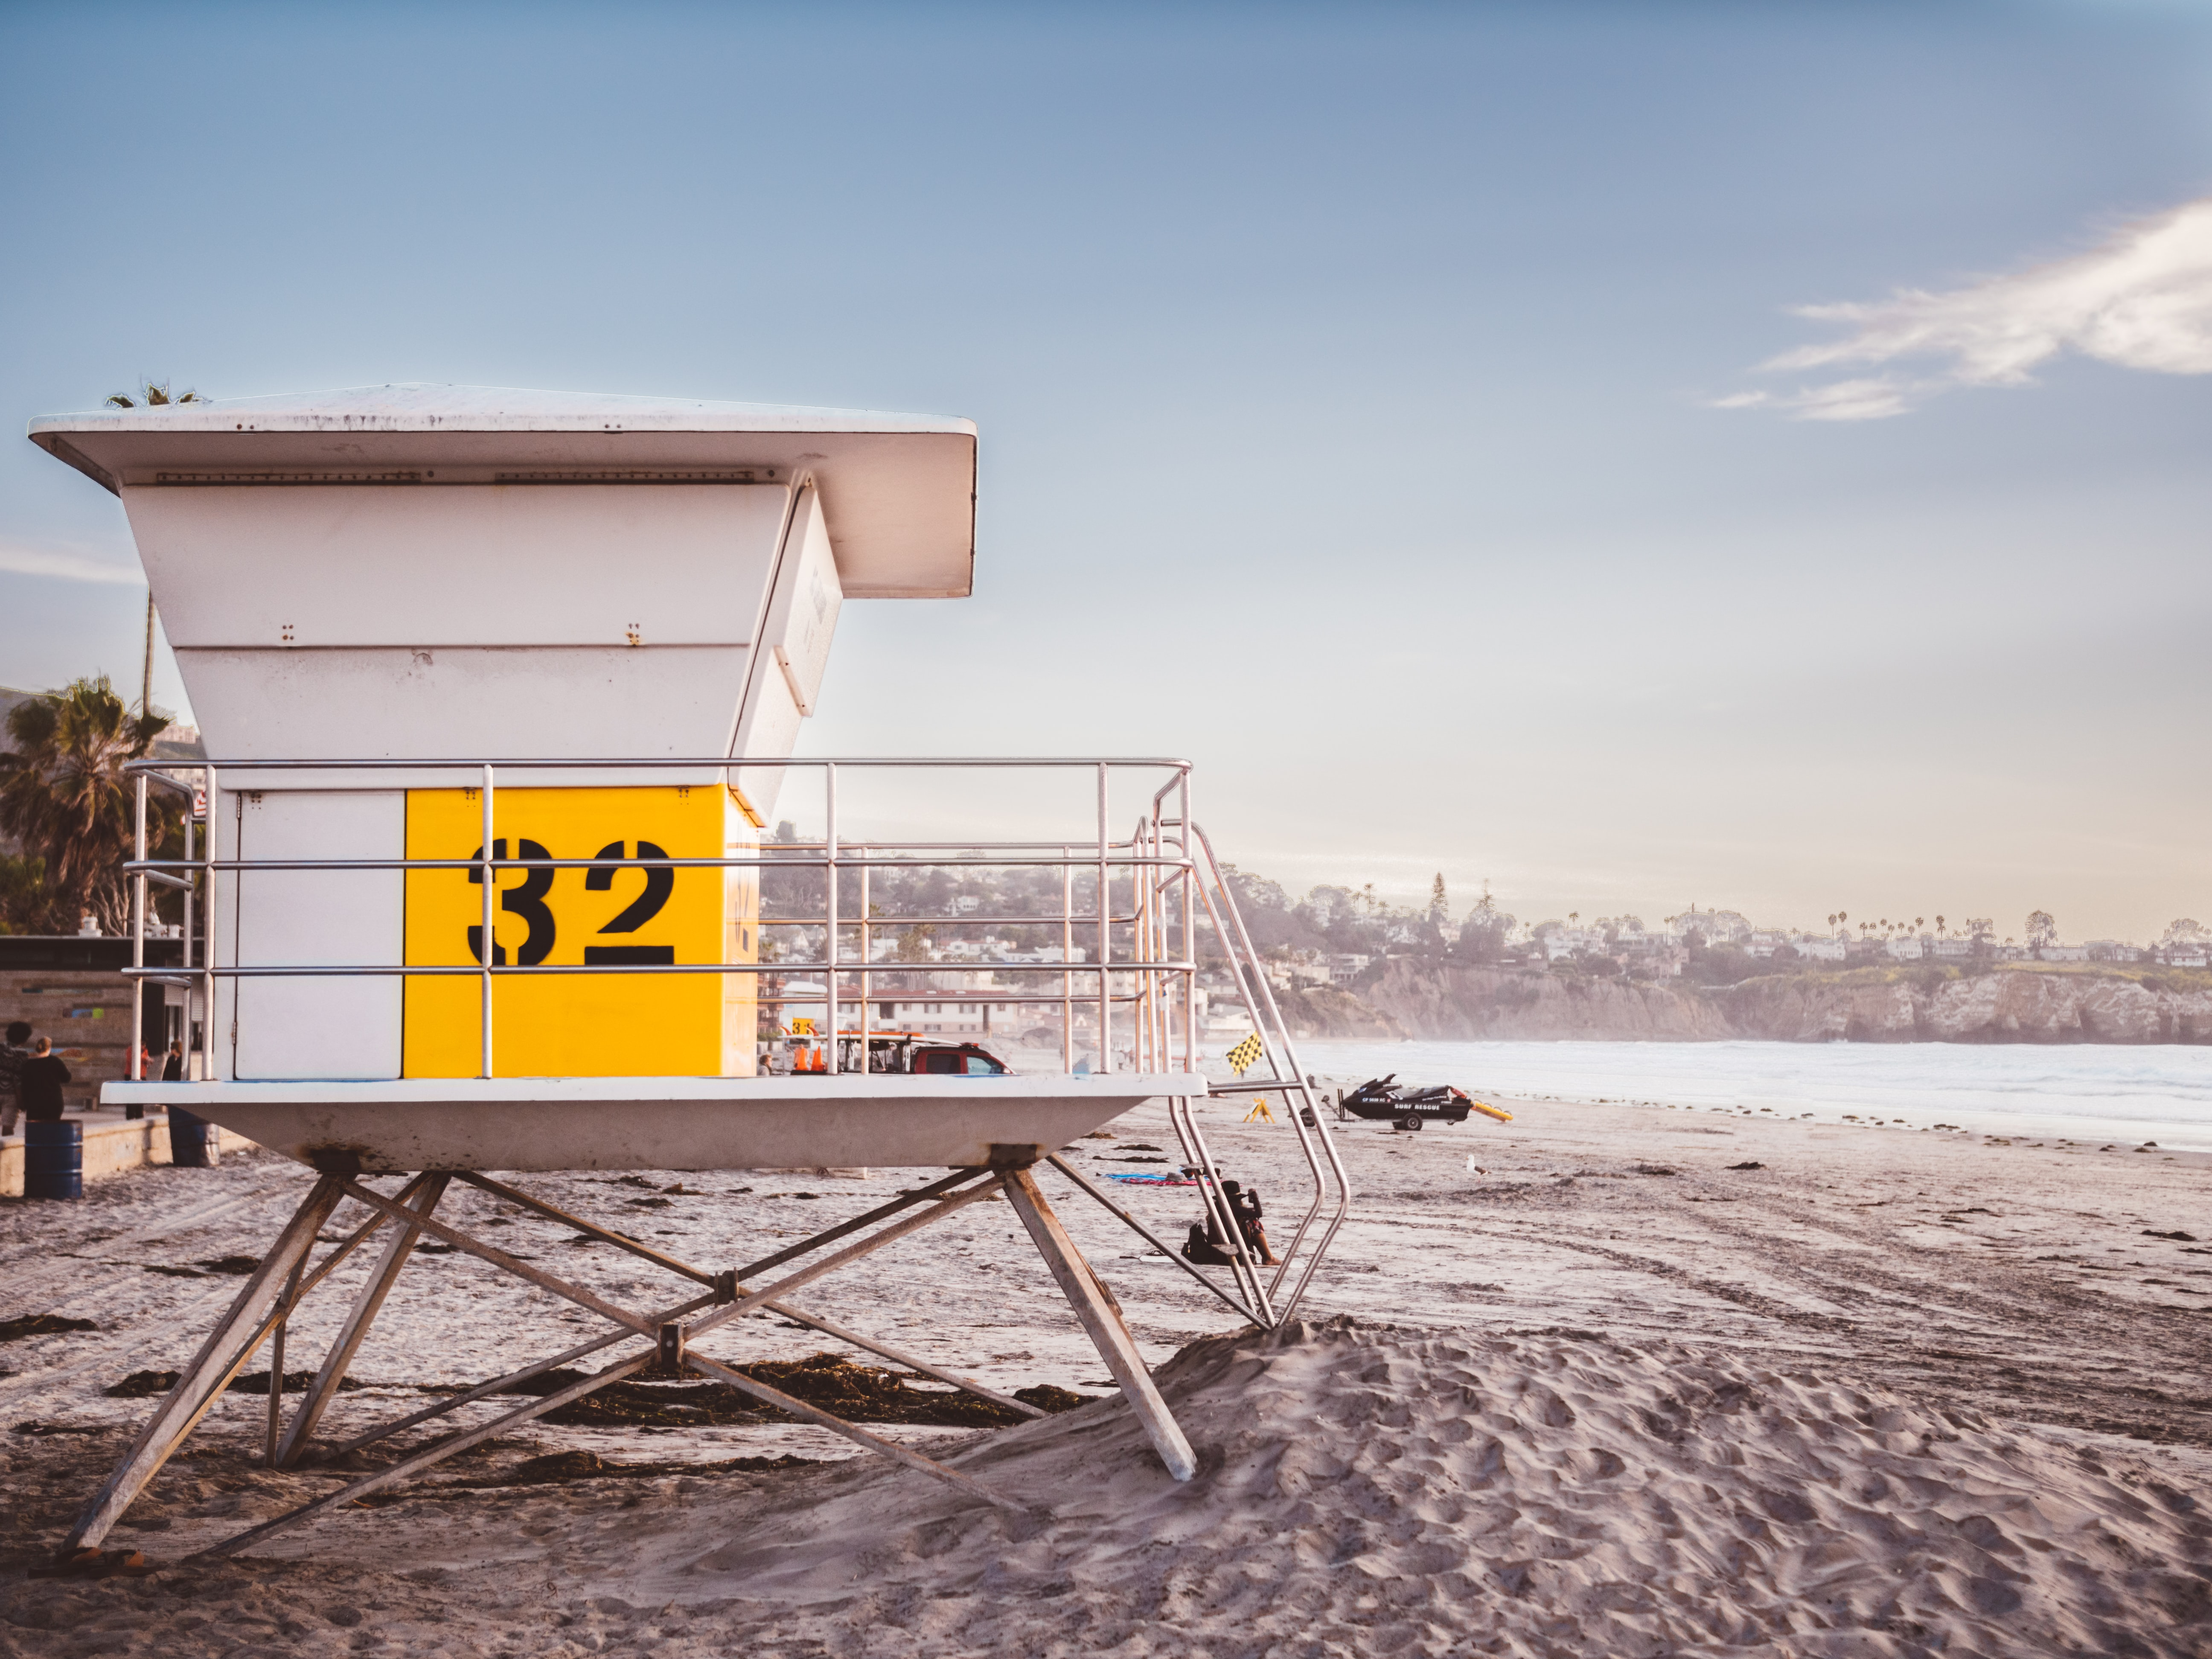 life guard station during daytime